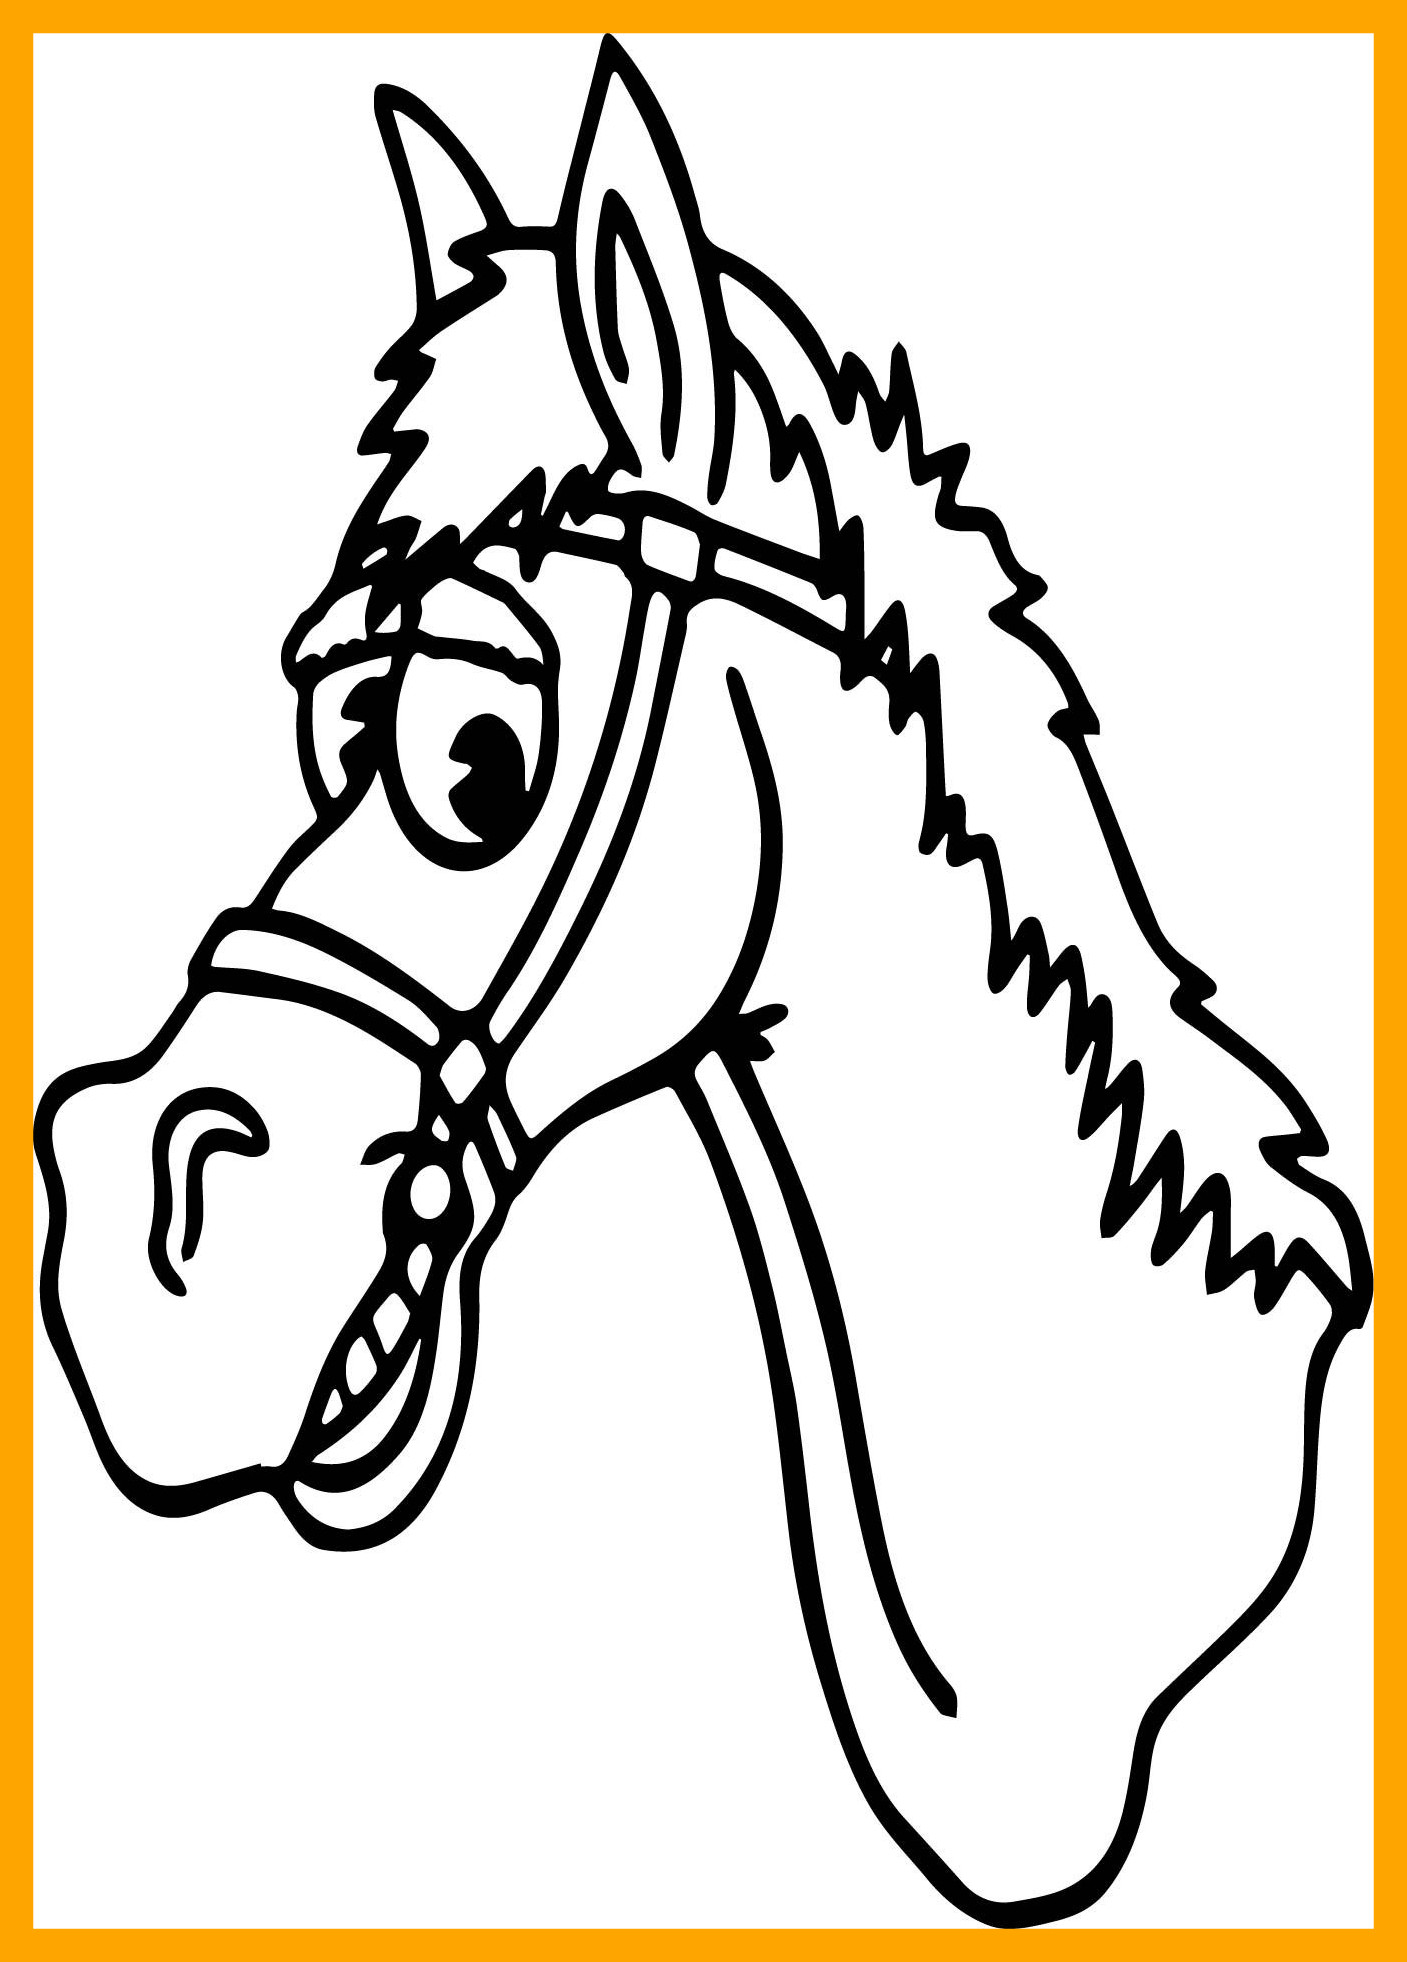 1407x1962 Awesome Horse Line Drawing Clip Art At Getdrawings For Personal